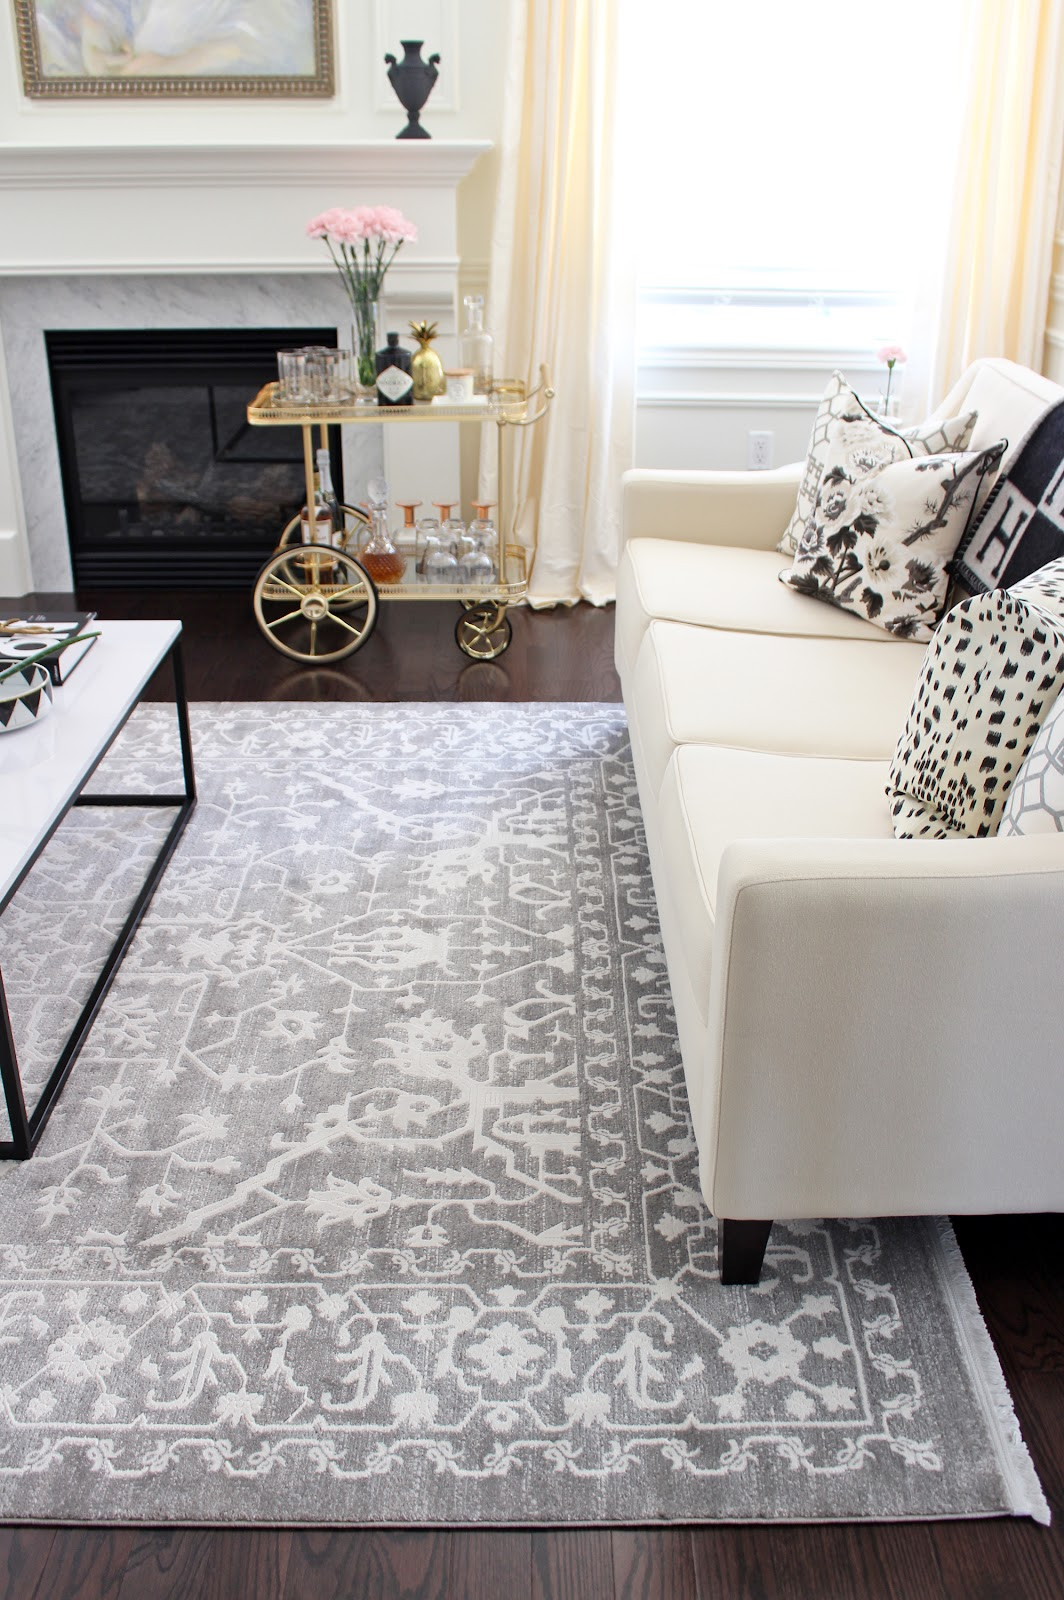 AM Dolce Vita: Living Room New Rug